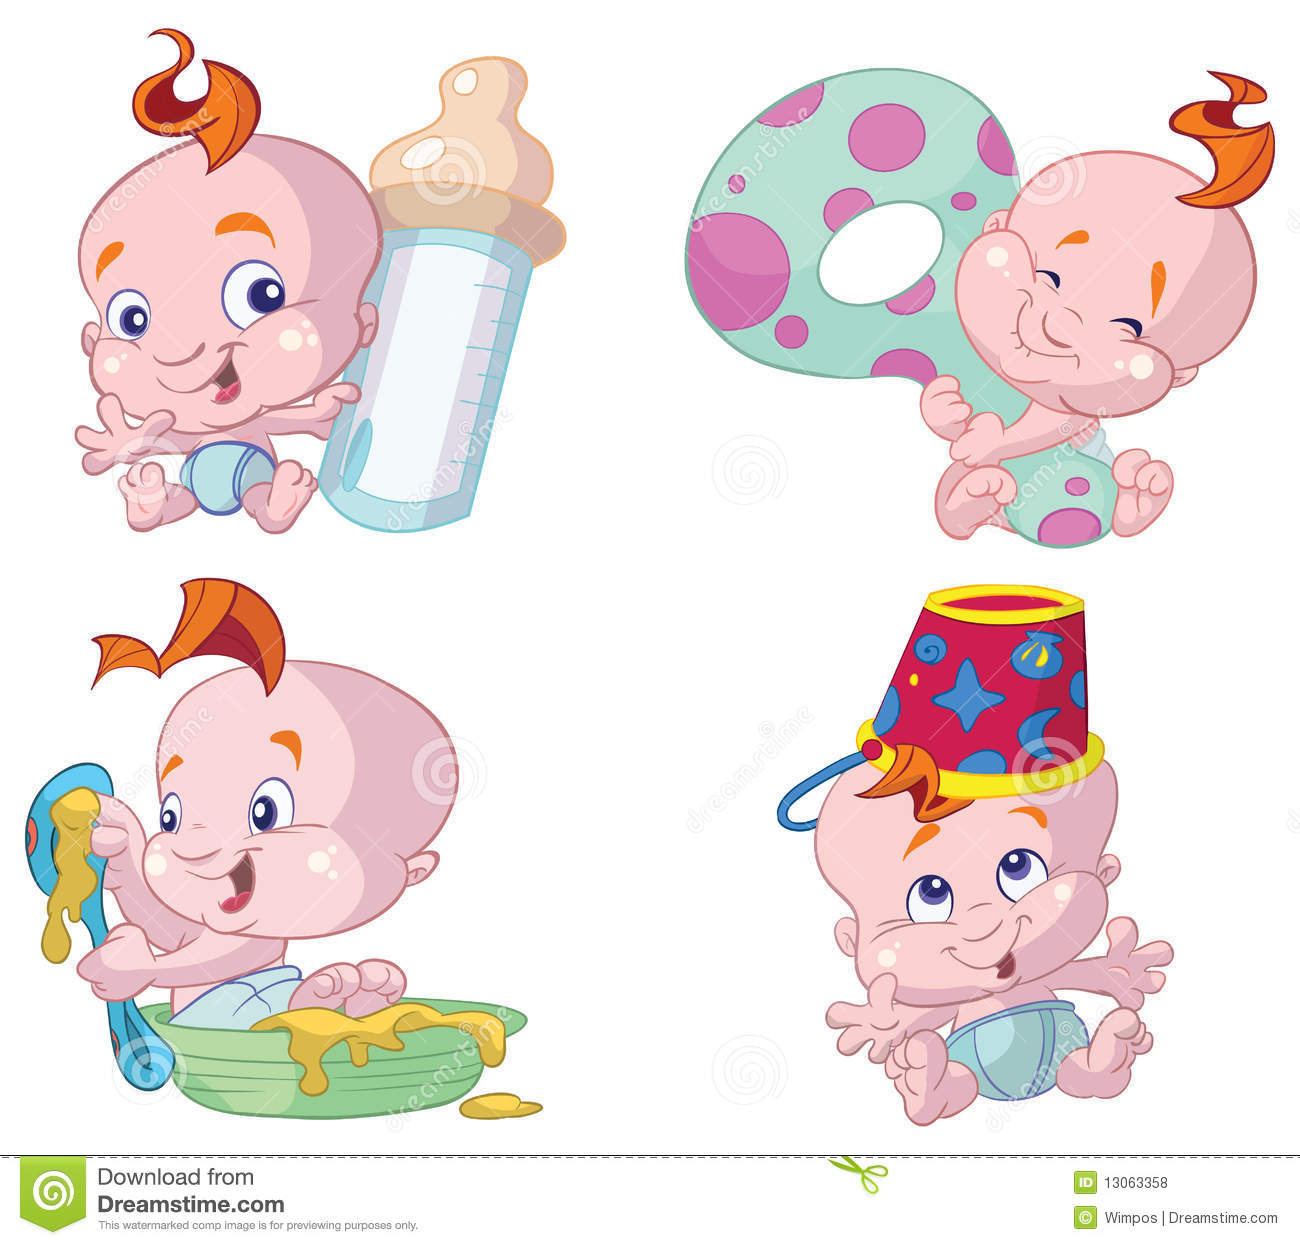 Sweet twins royalty free stock photo image 10320675 - Happy Baby Cartoons Royalty Free Stock Photos